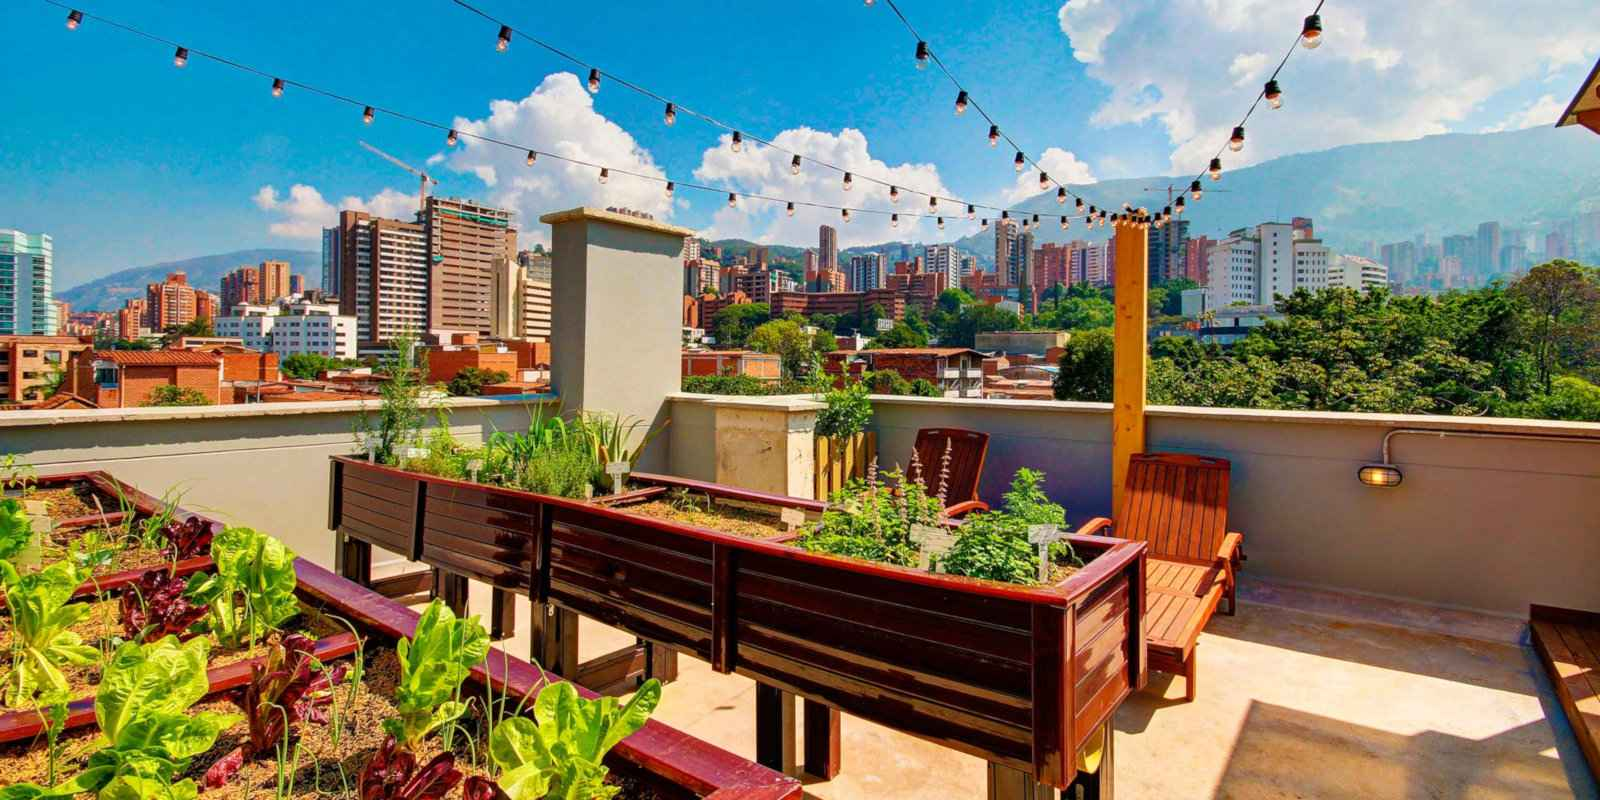 For comfort and fun on a budget, stay at the Los Patios Hostal Boutique in Medellin